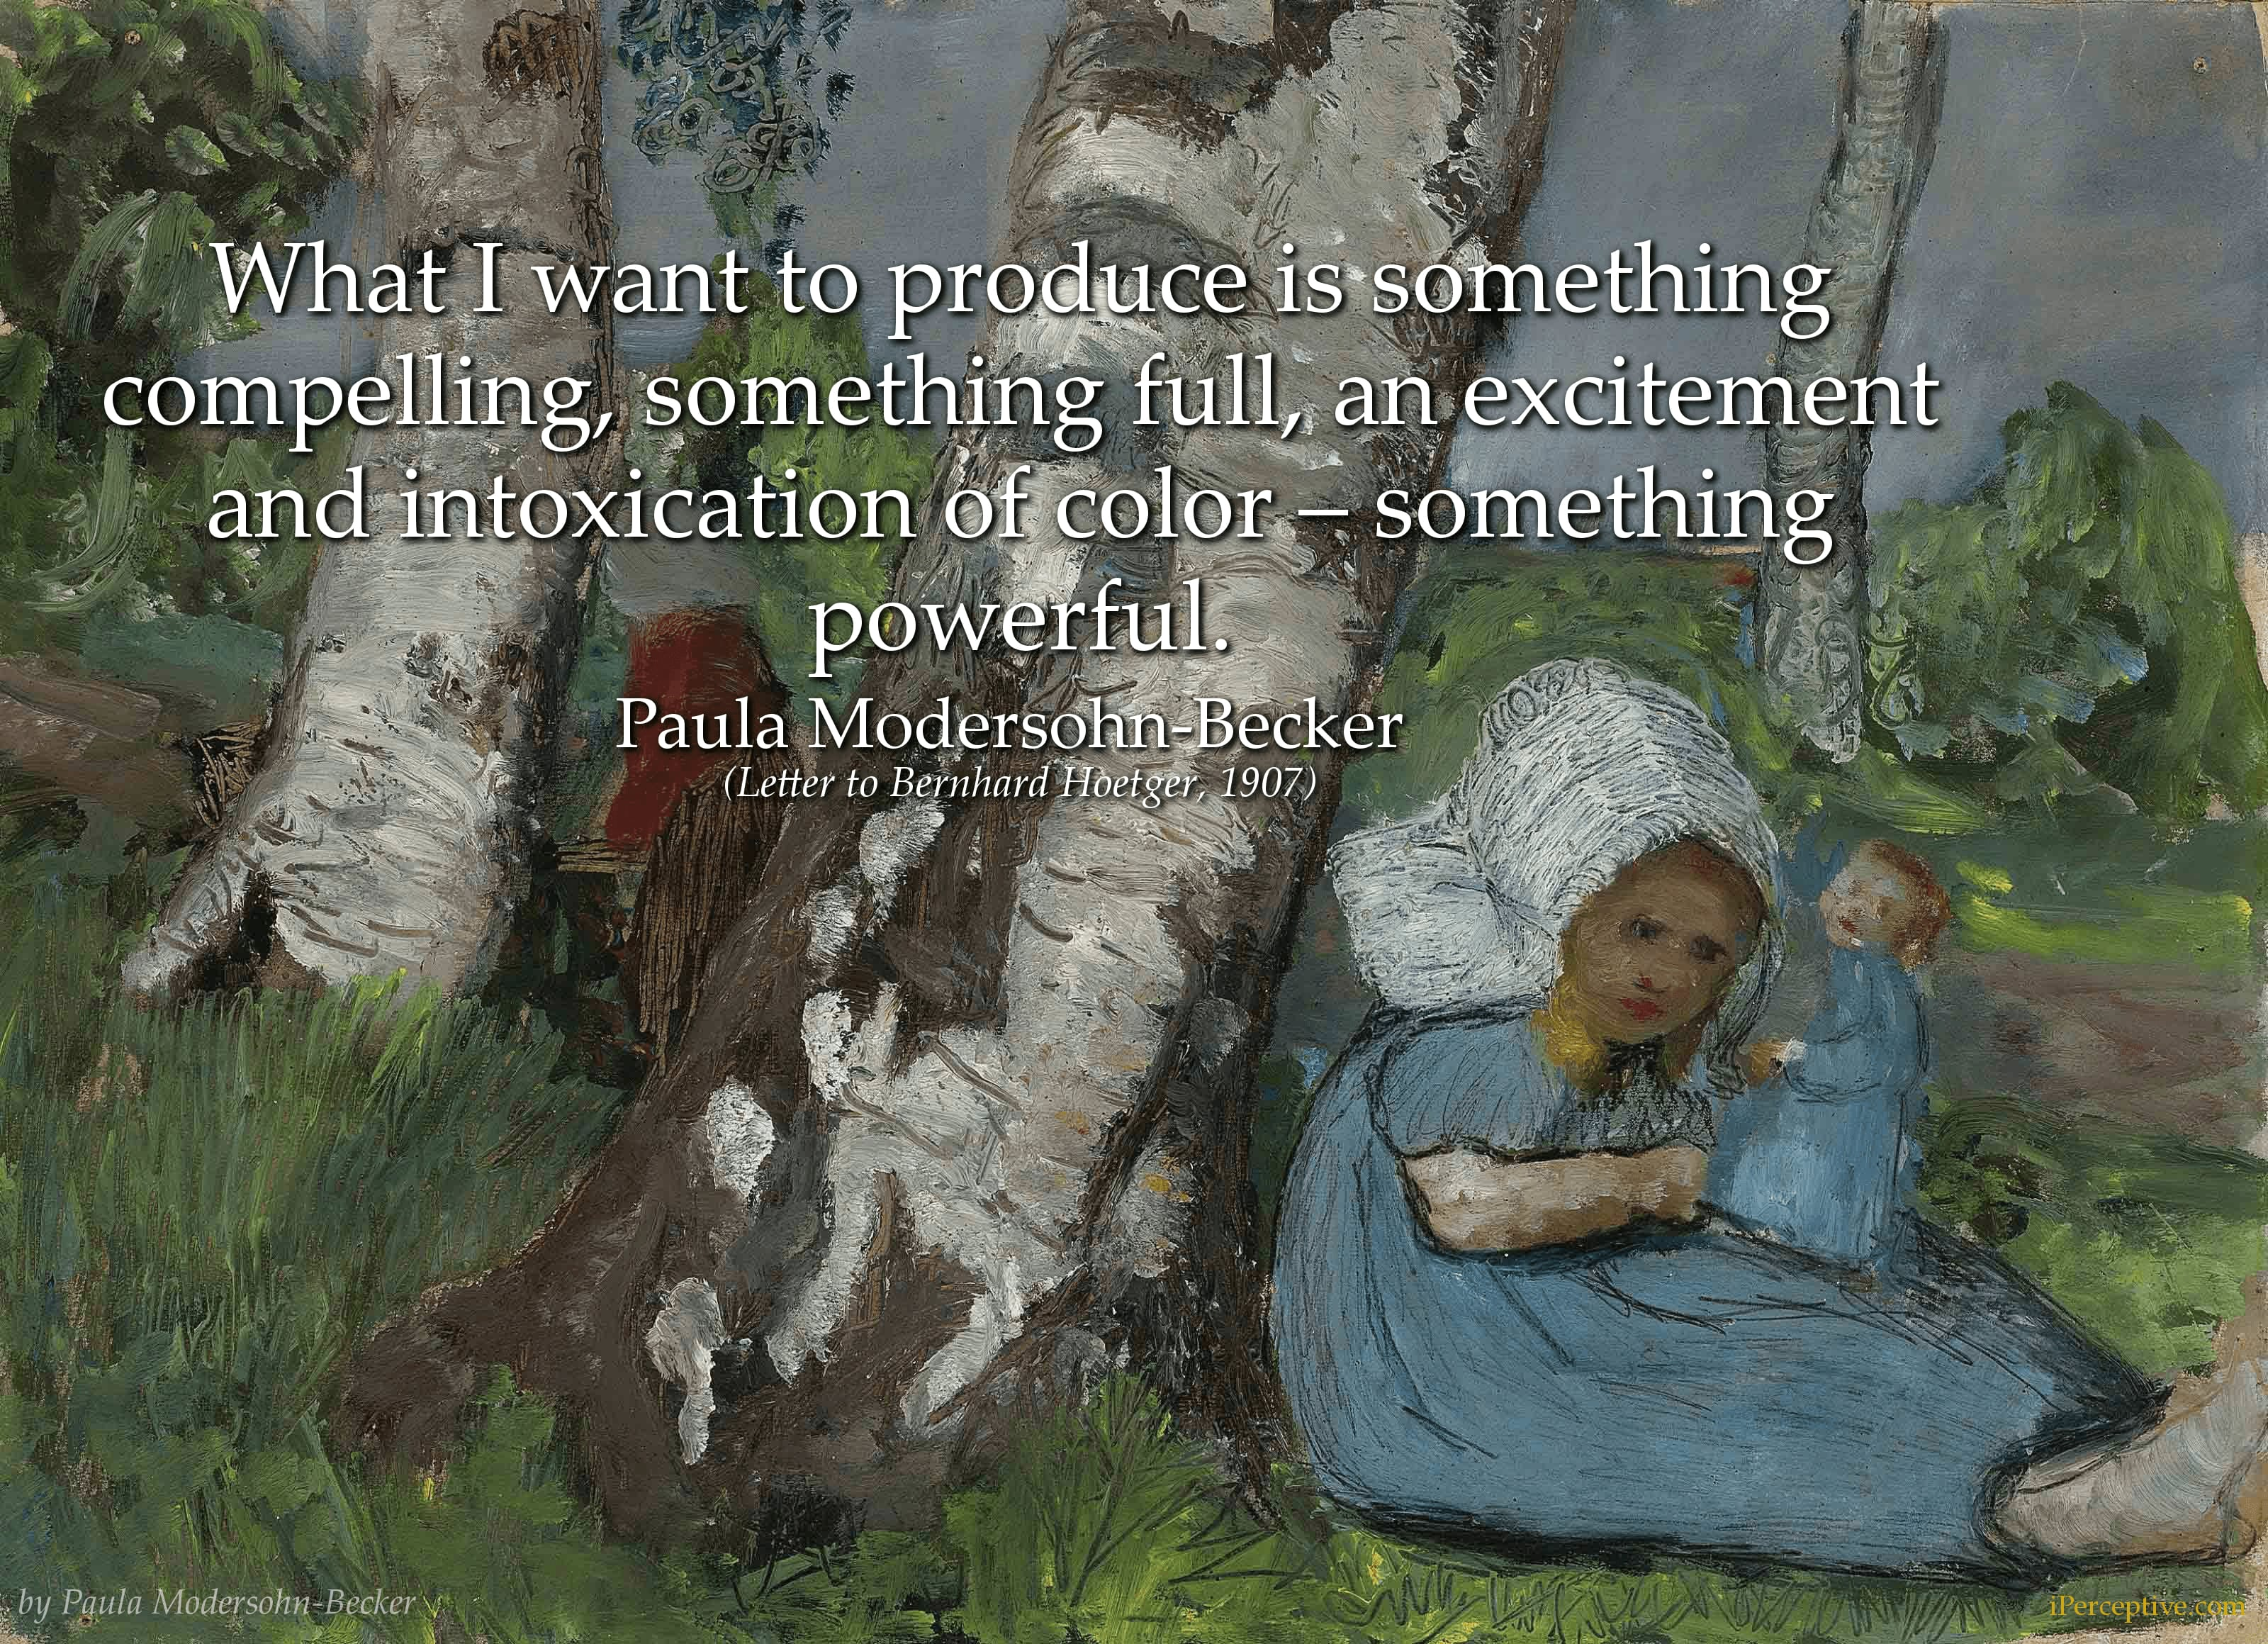 Paula Modersohn Becker Art Quote: What I want to produce is something compelling, something full, an excitement...